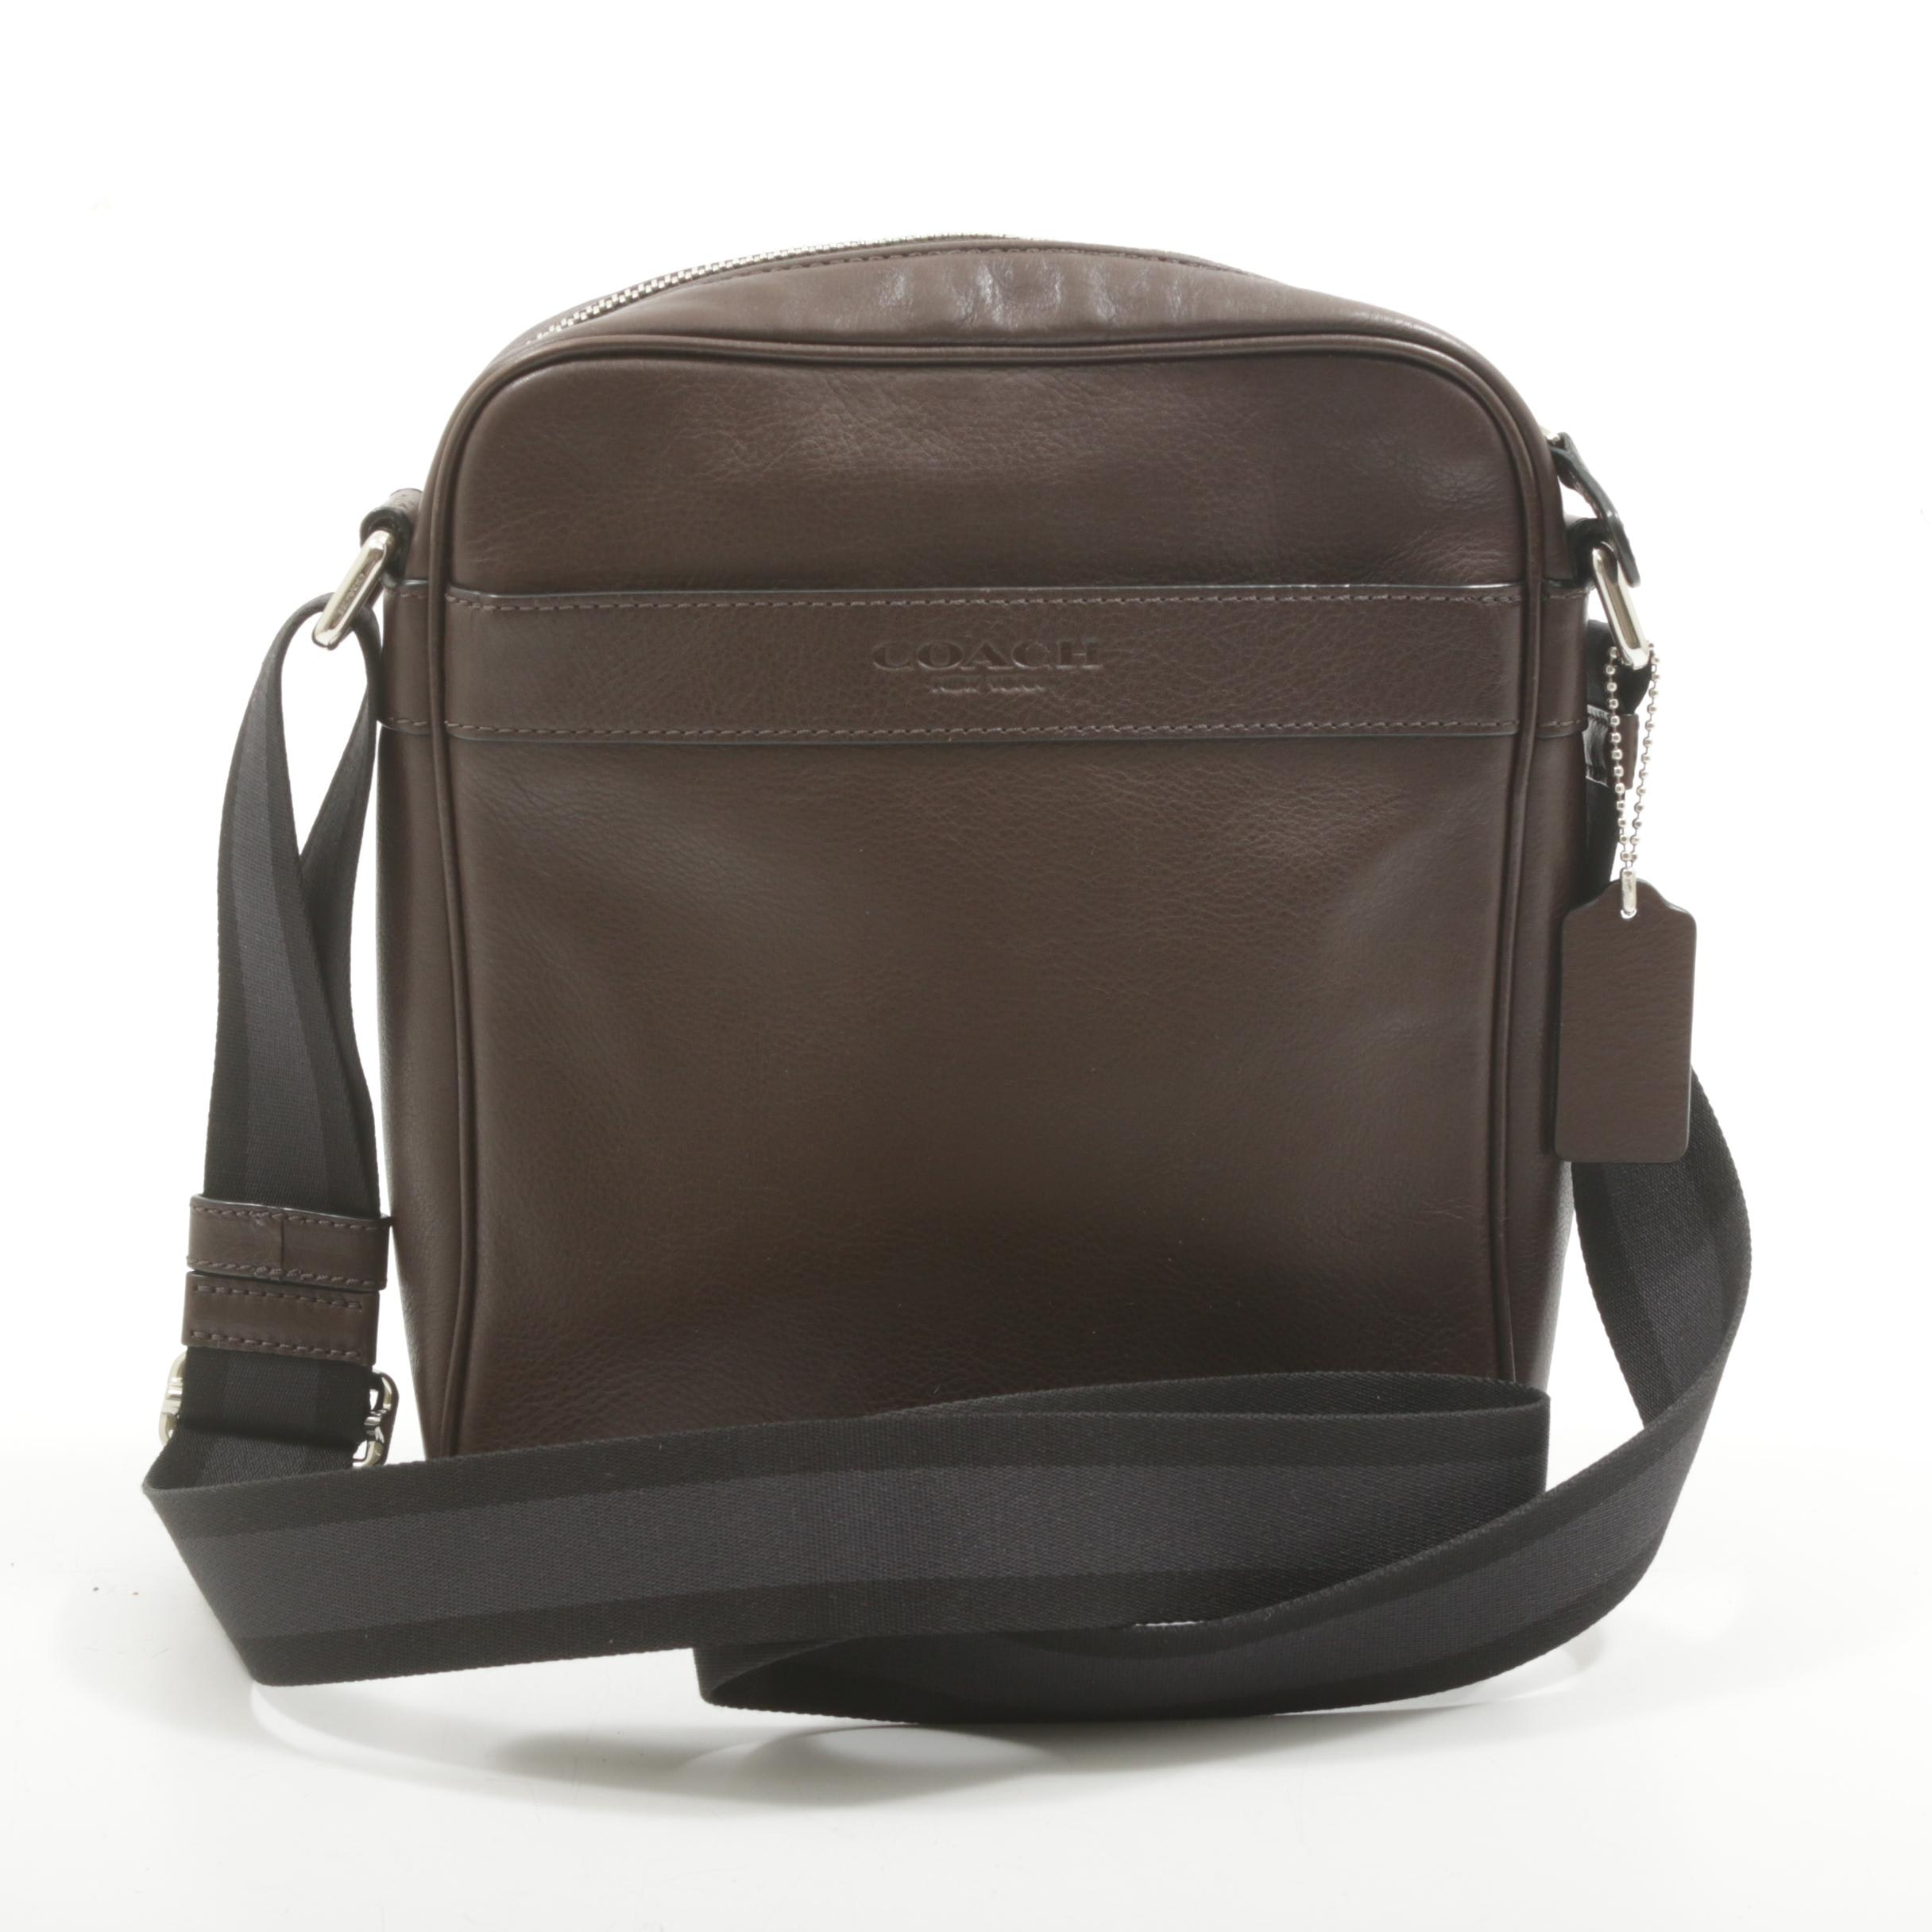 Coach New York Brown Grained Leather Crossbody Messenger Bag